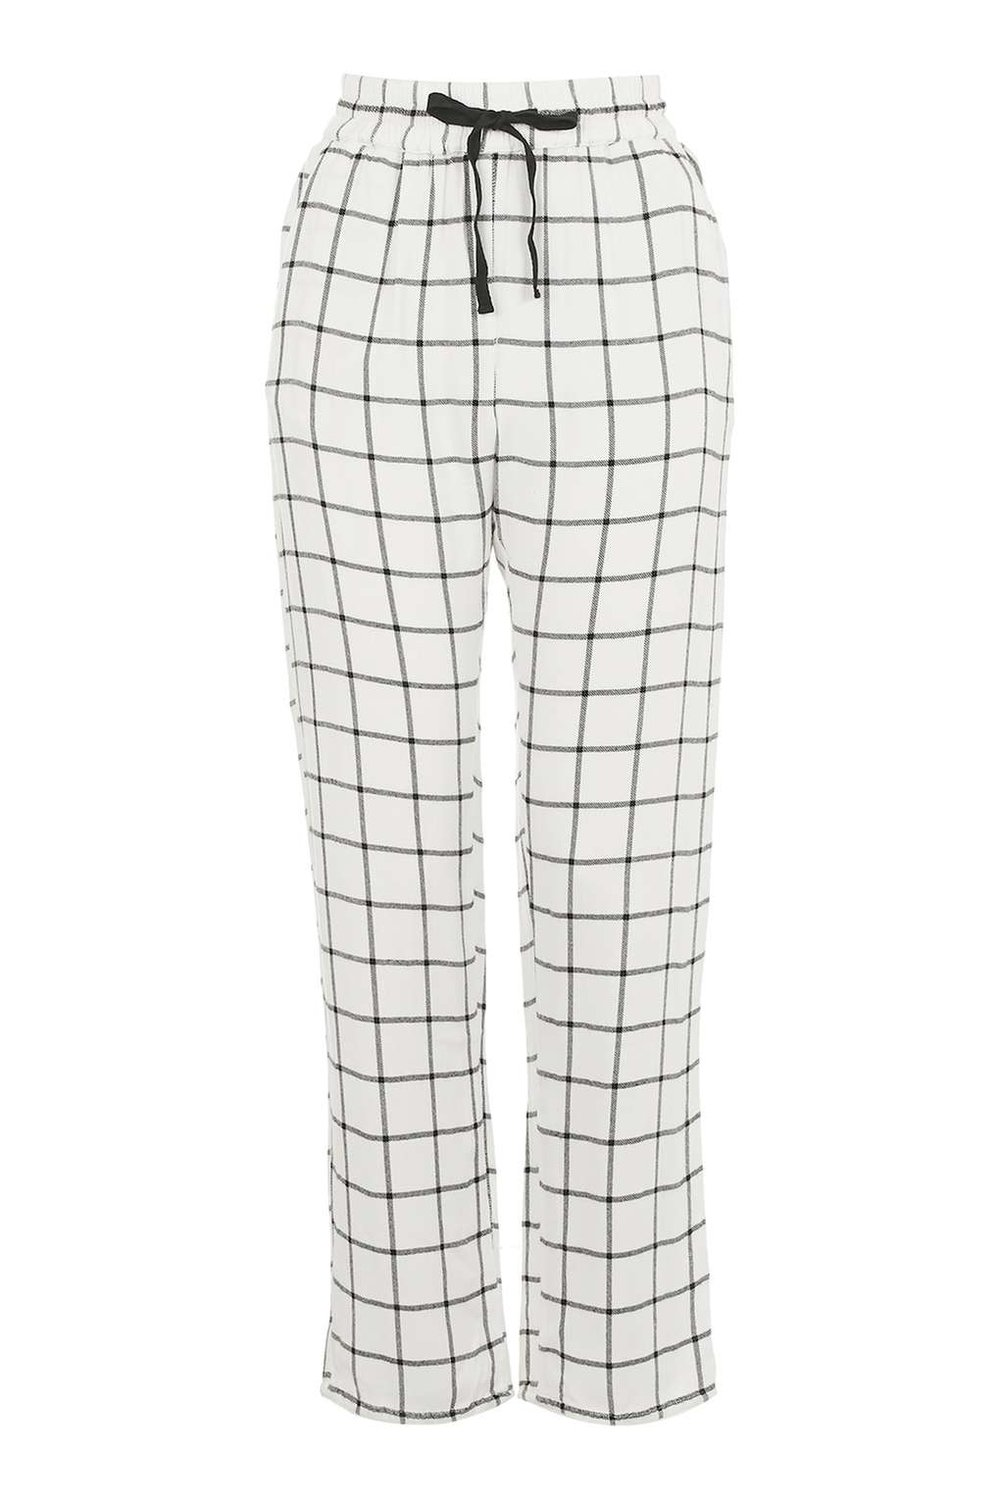 TOPSHOP PLAID CHECK PAJAMA TROUSERS